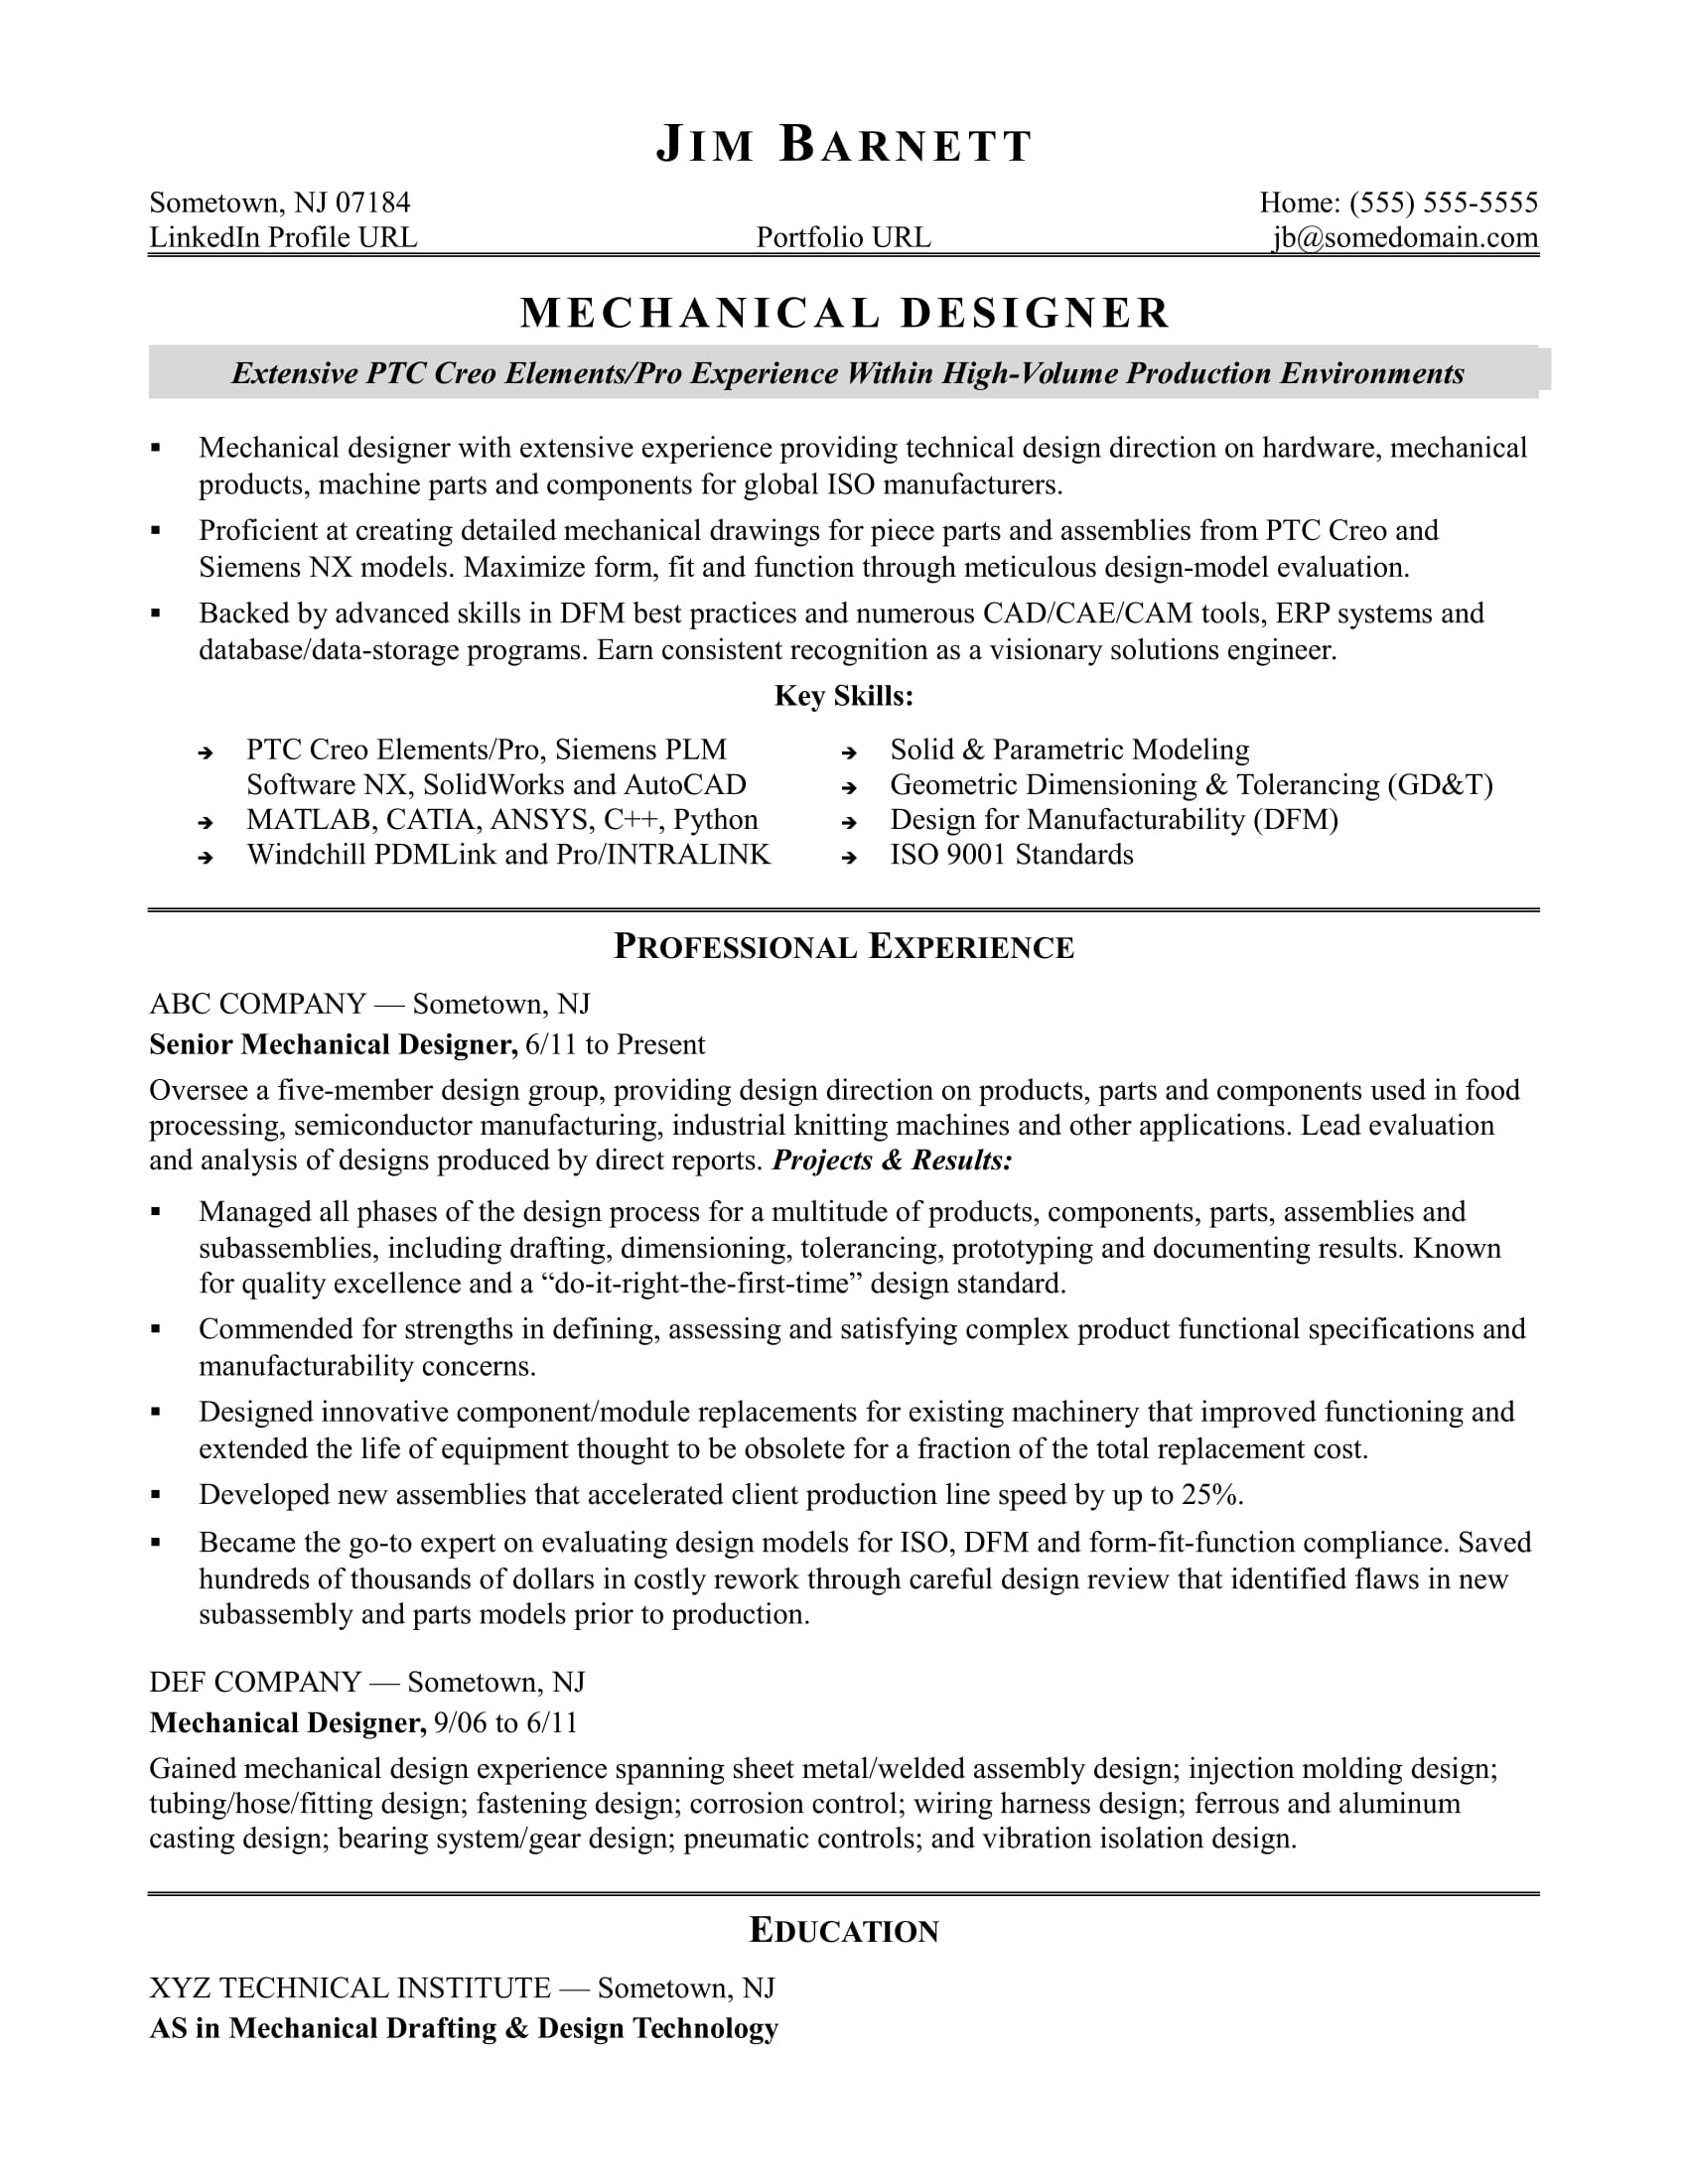 Sample Resume For An Experienced Mechanical Designer  Designer Resume